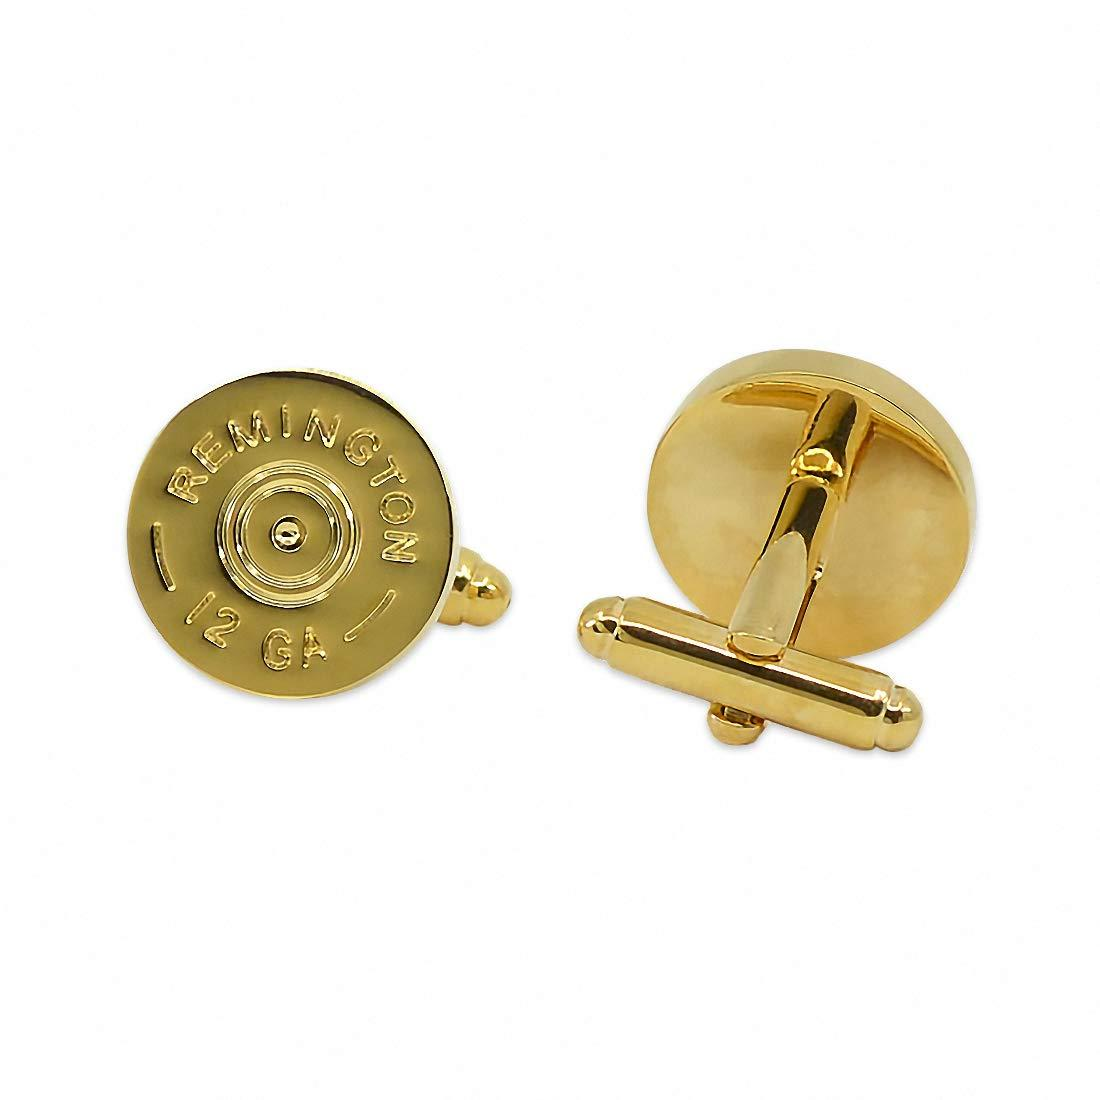 "The Masonic Exchange Remington 12 Gauge Shotgun Shell Gold Cufflink Set - 5/8"" Diameter"